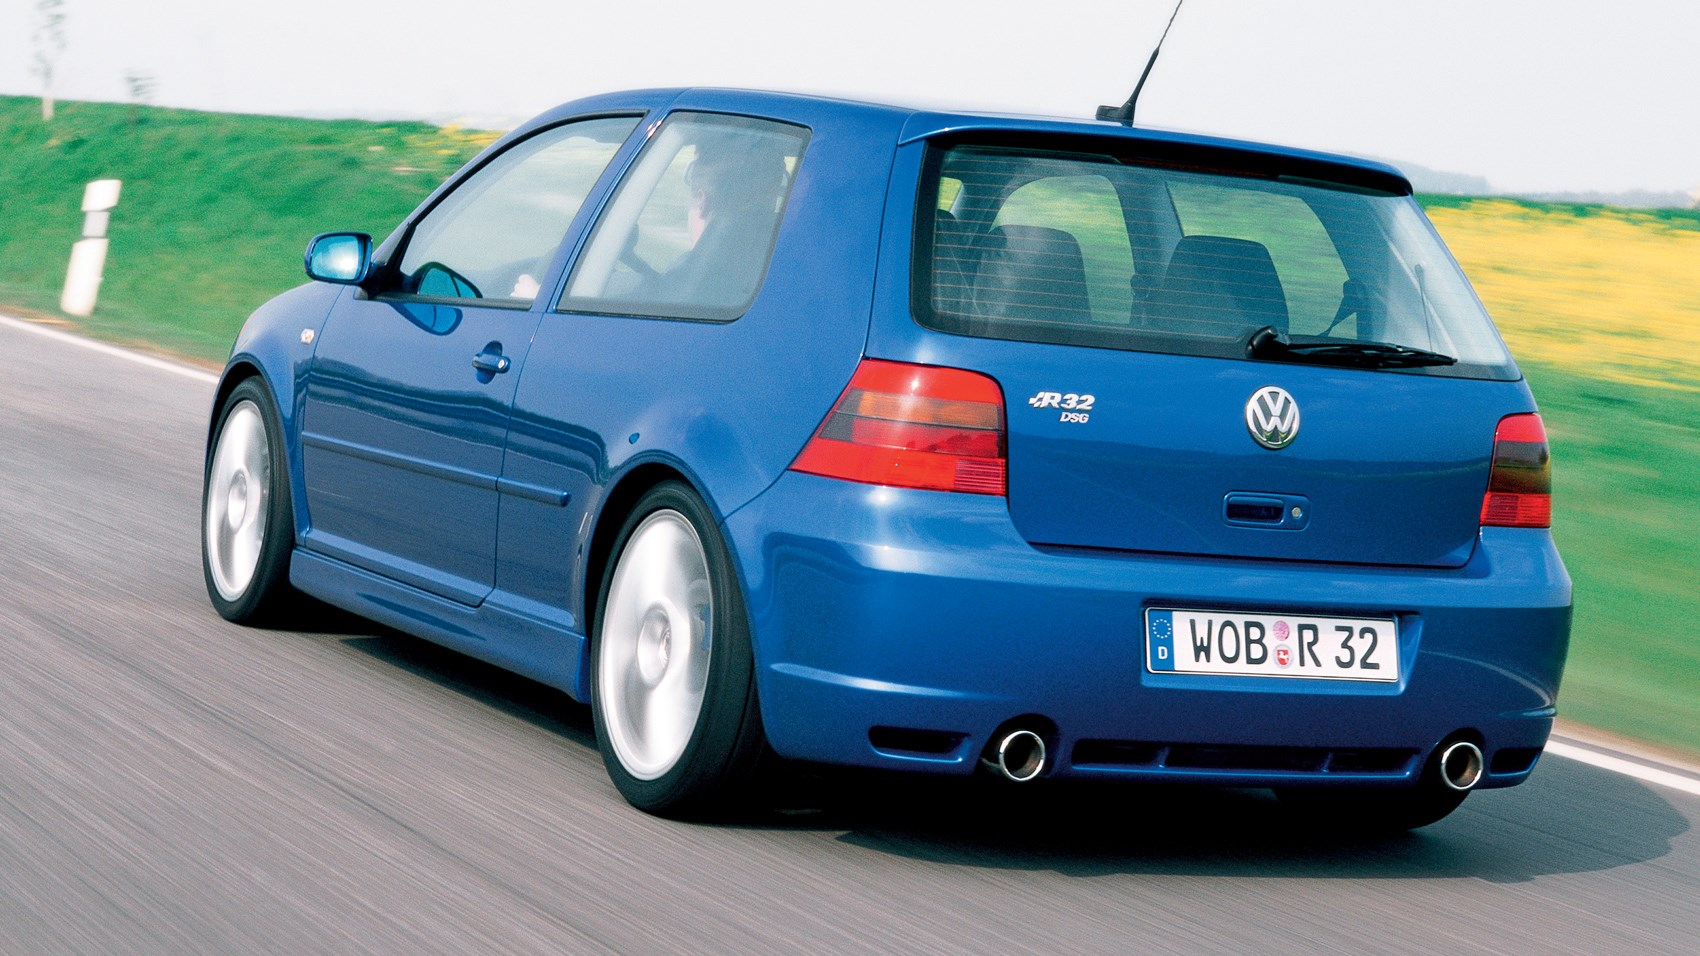 hight resolution of vw golf r32 rear tracking